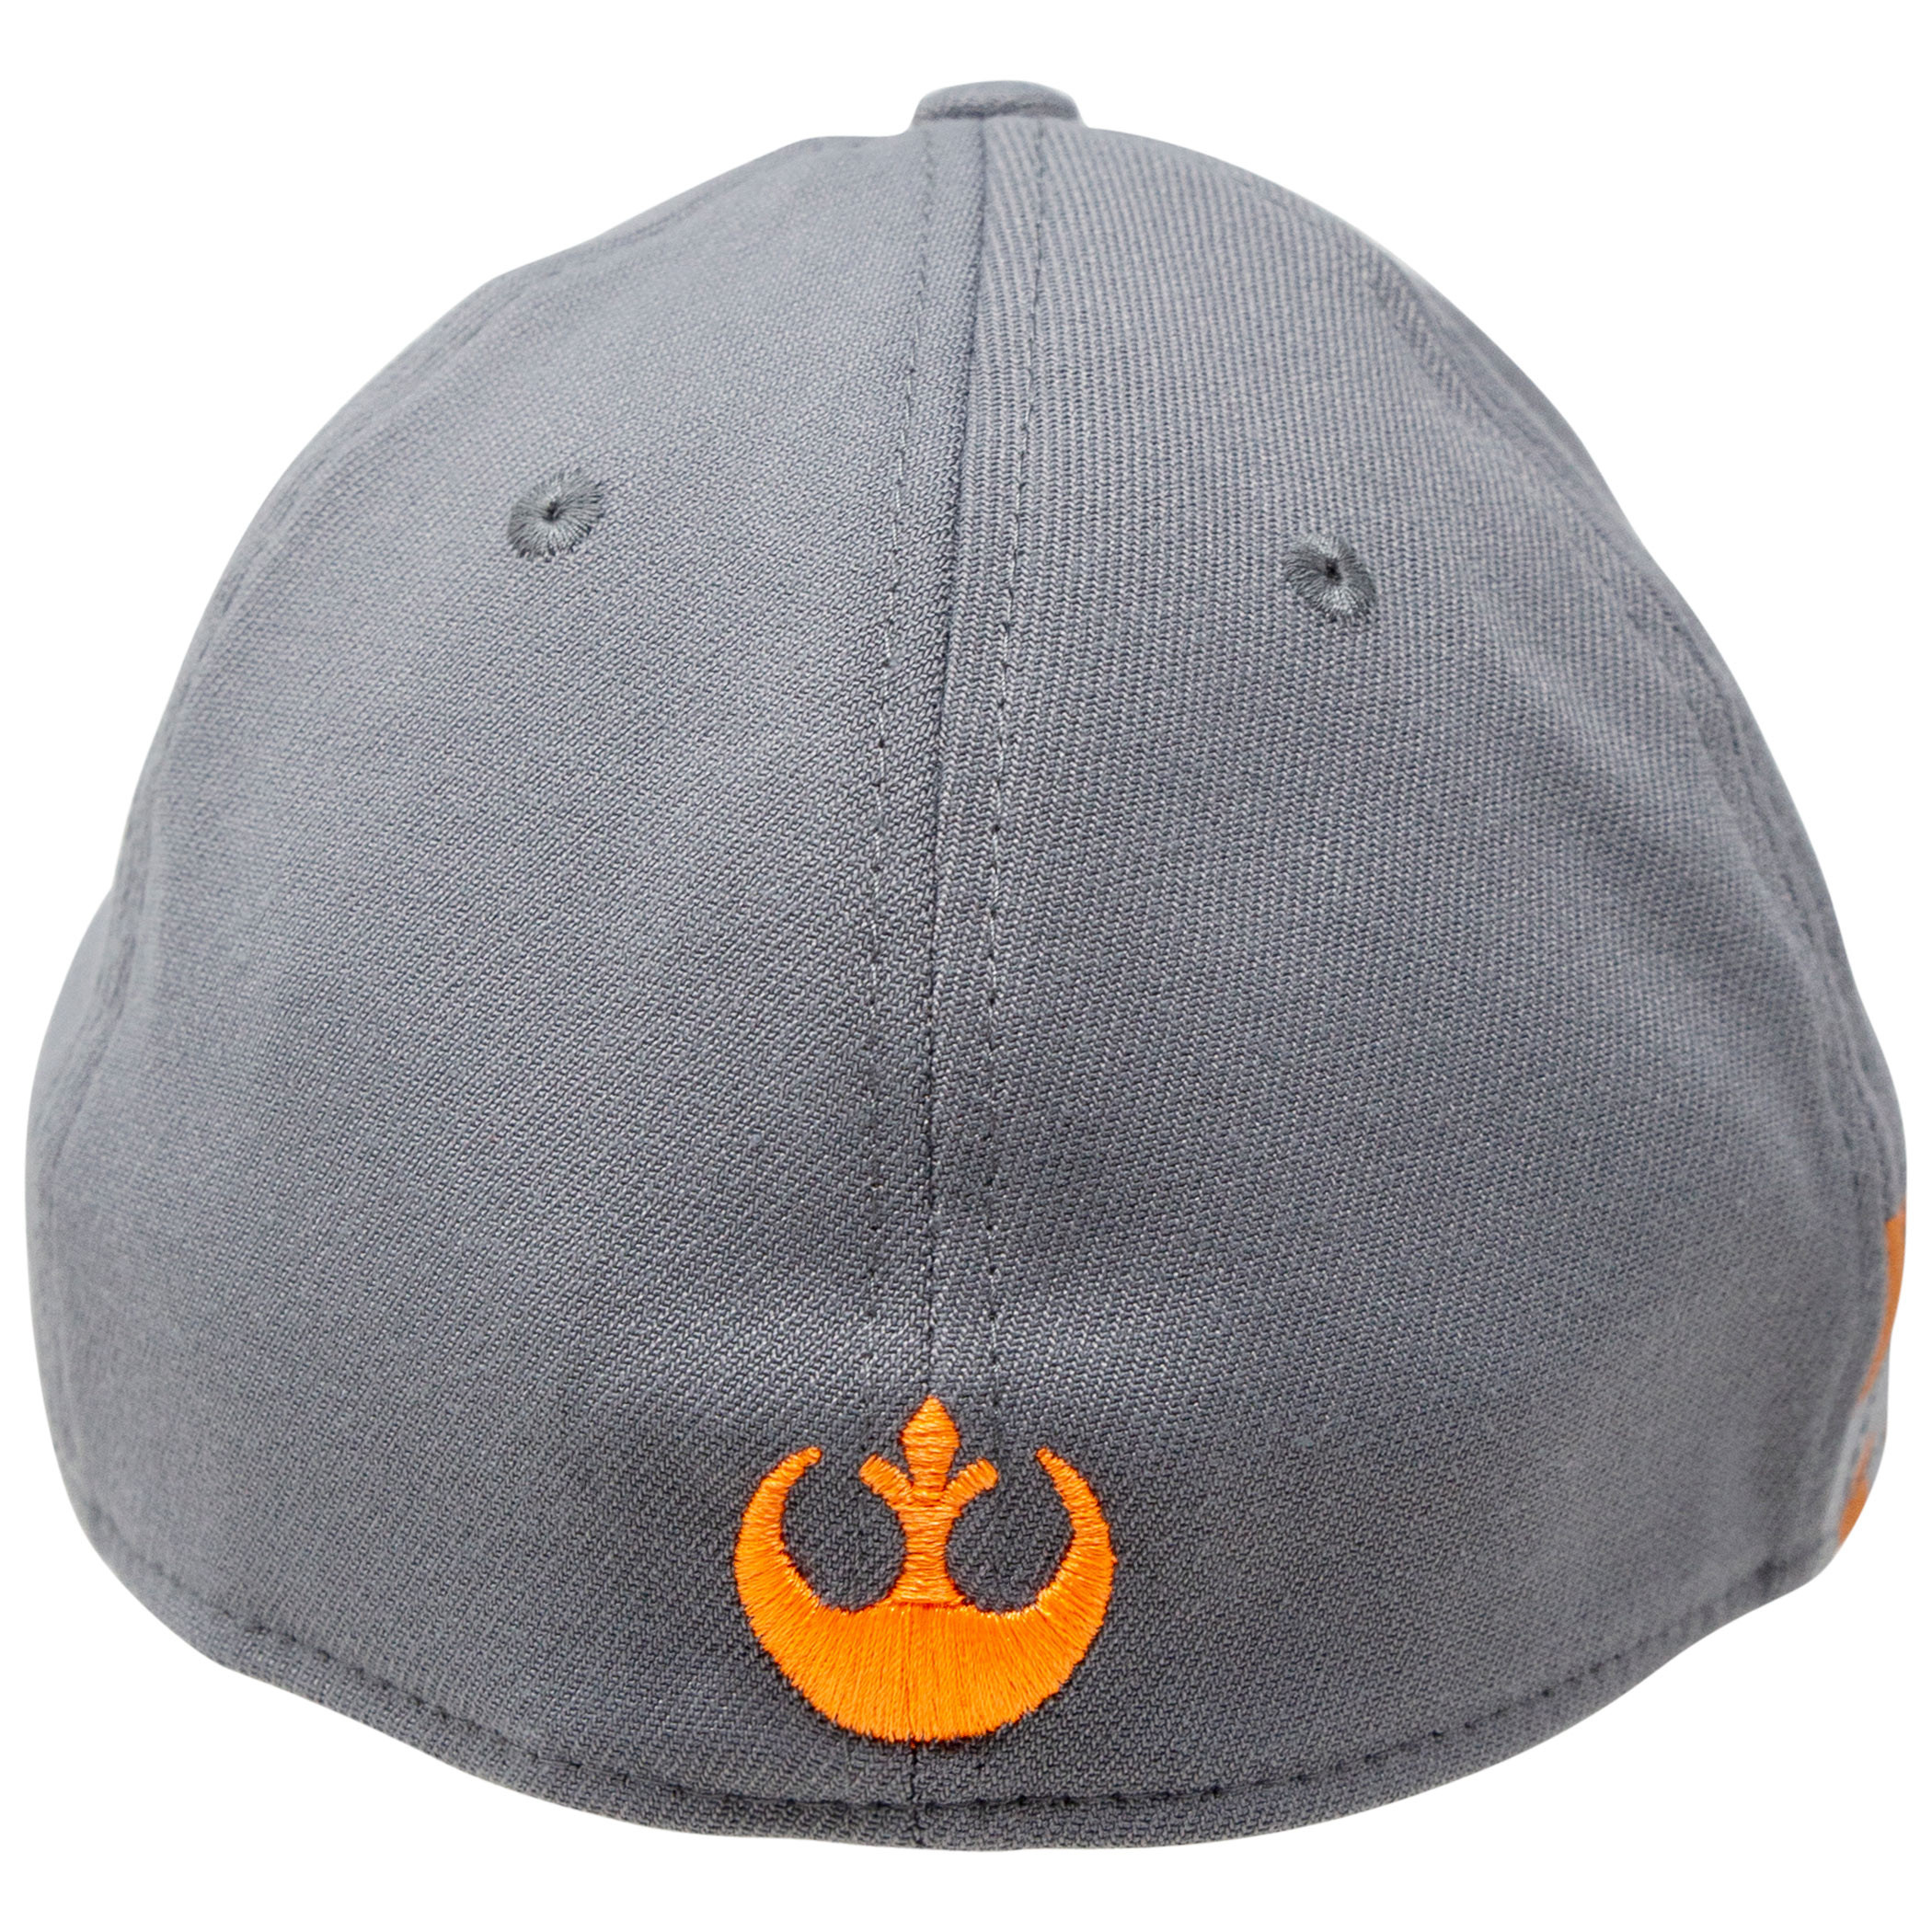 Star Wars The Rise of Skywalker Rebel Training New Era 39Thirty Flex Fitted Hat